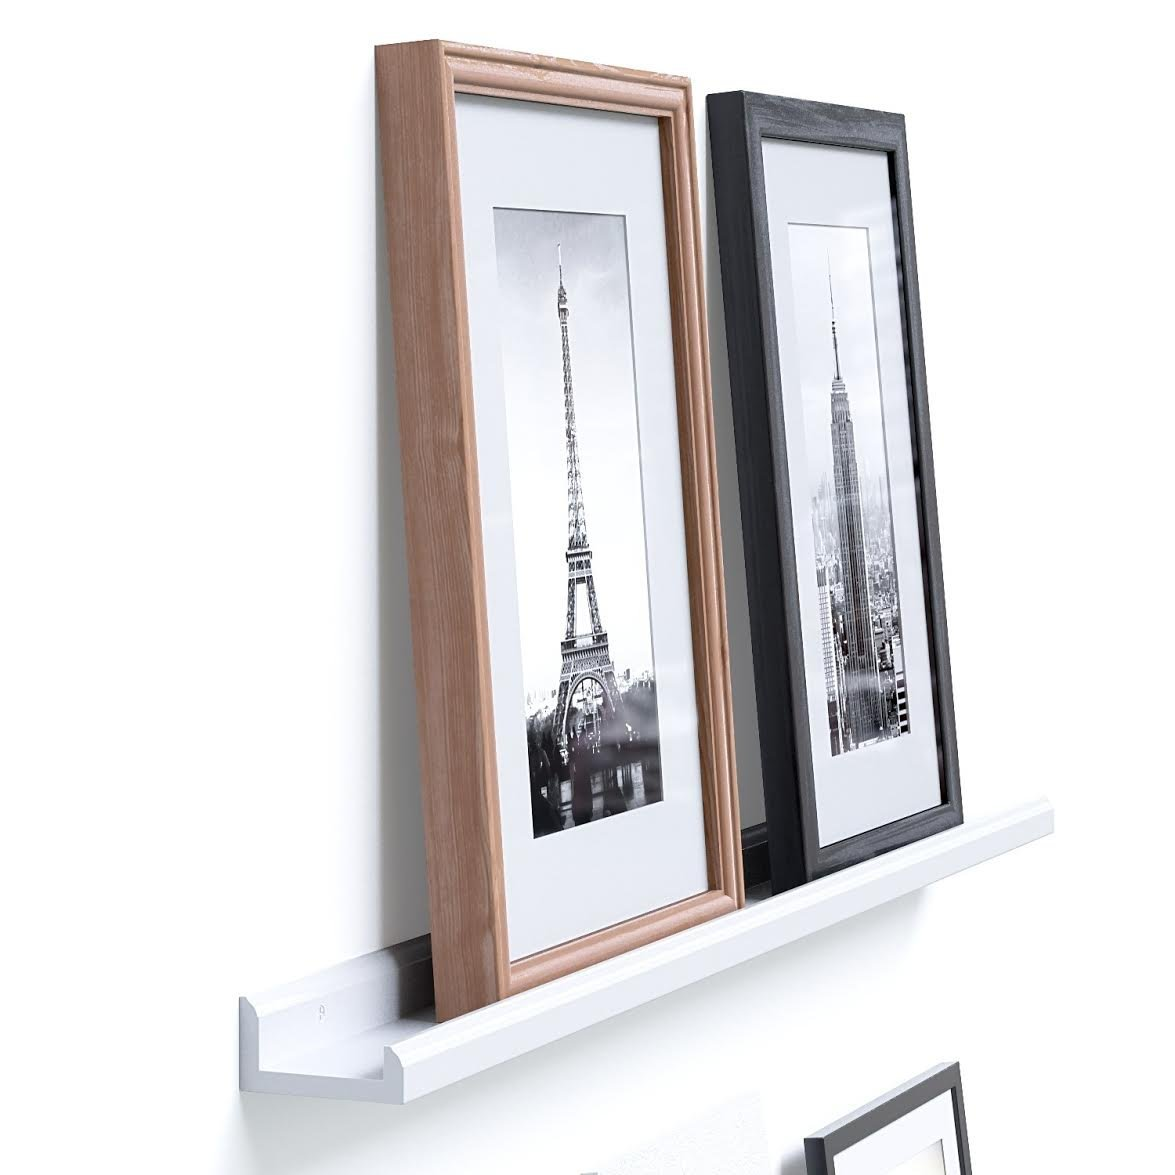 Wallniture Boston Contemporary Floating Wall Shelf - Picture Ledge for Frames Book Display White 46 Inch